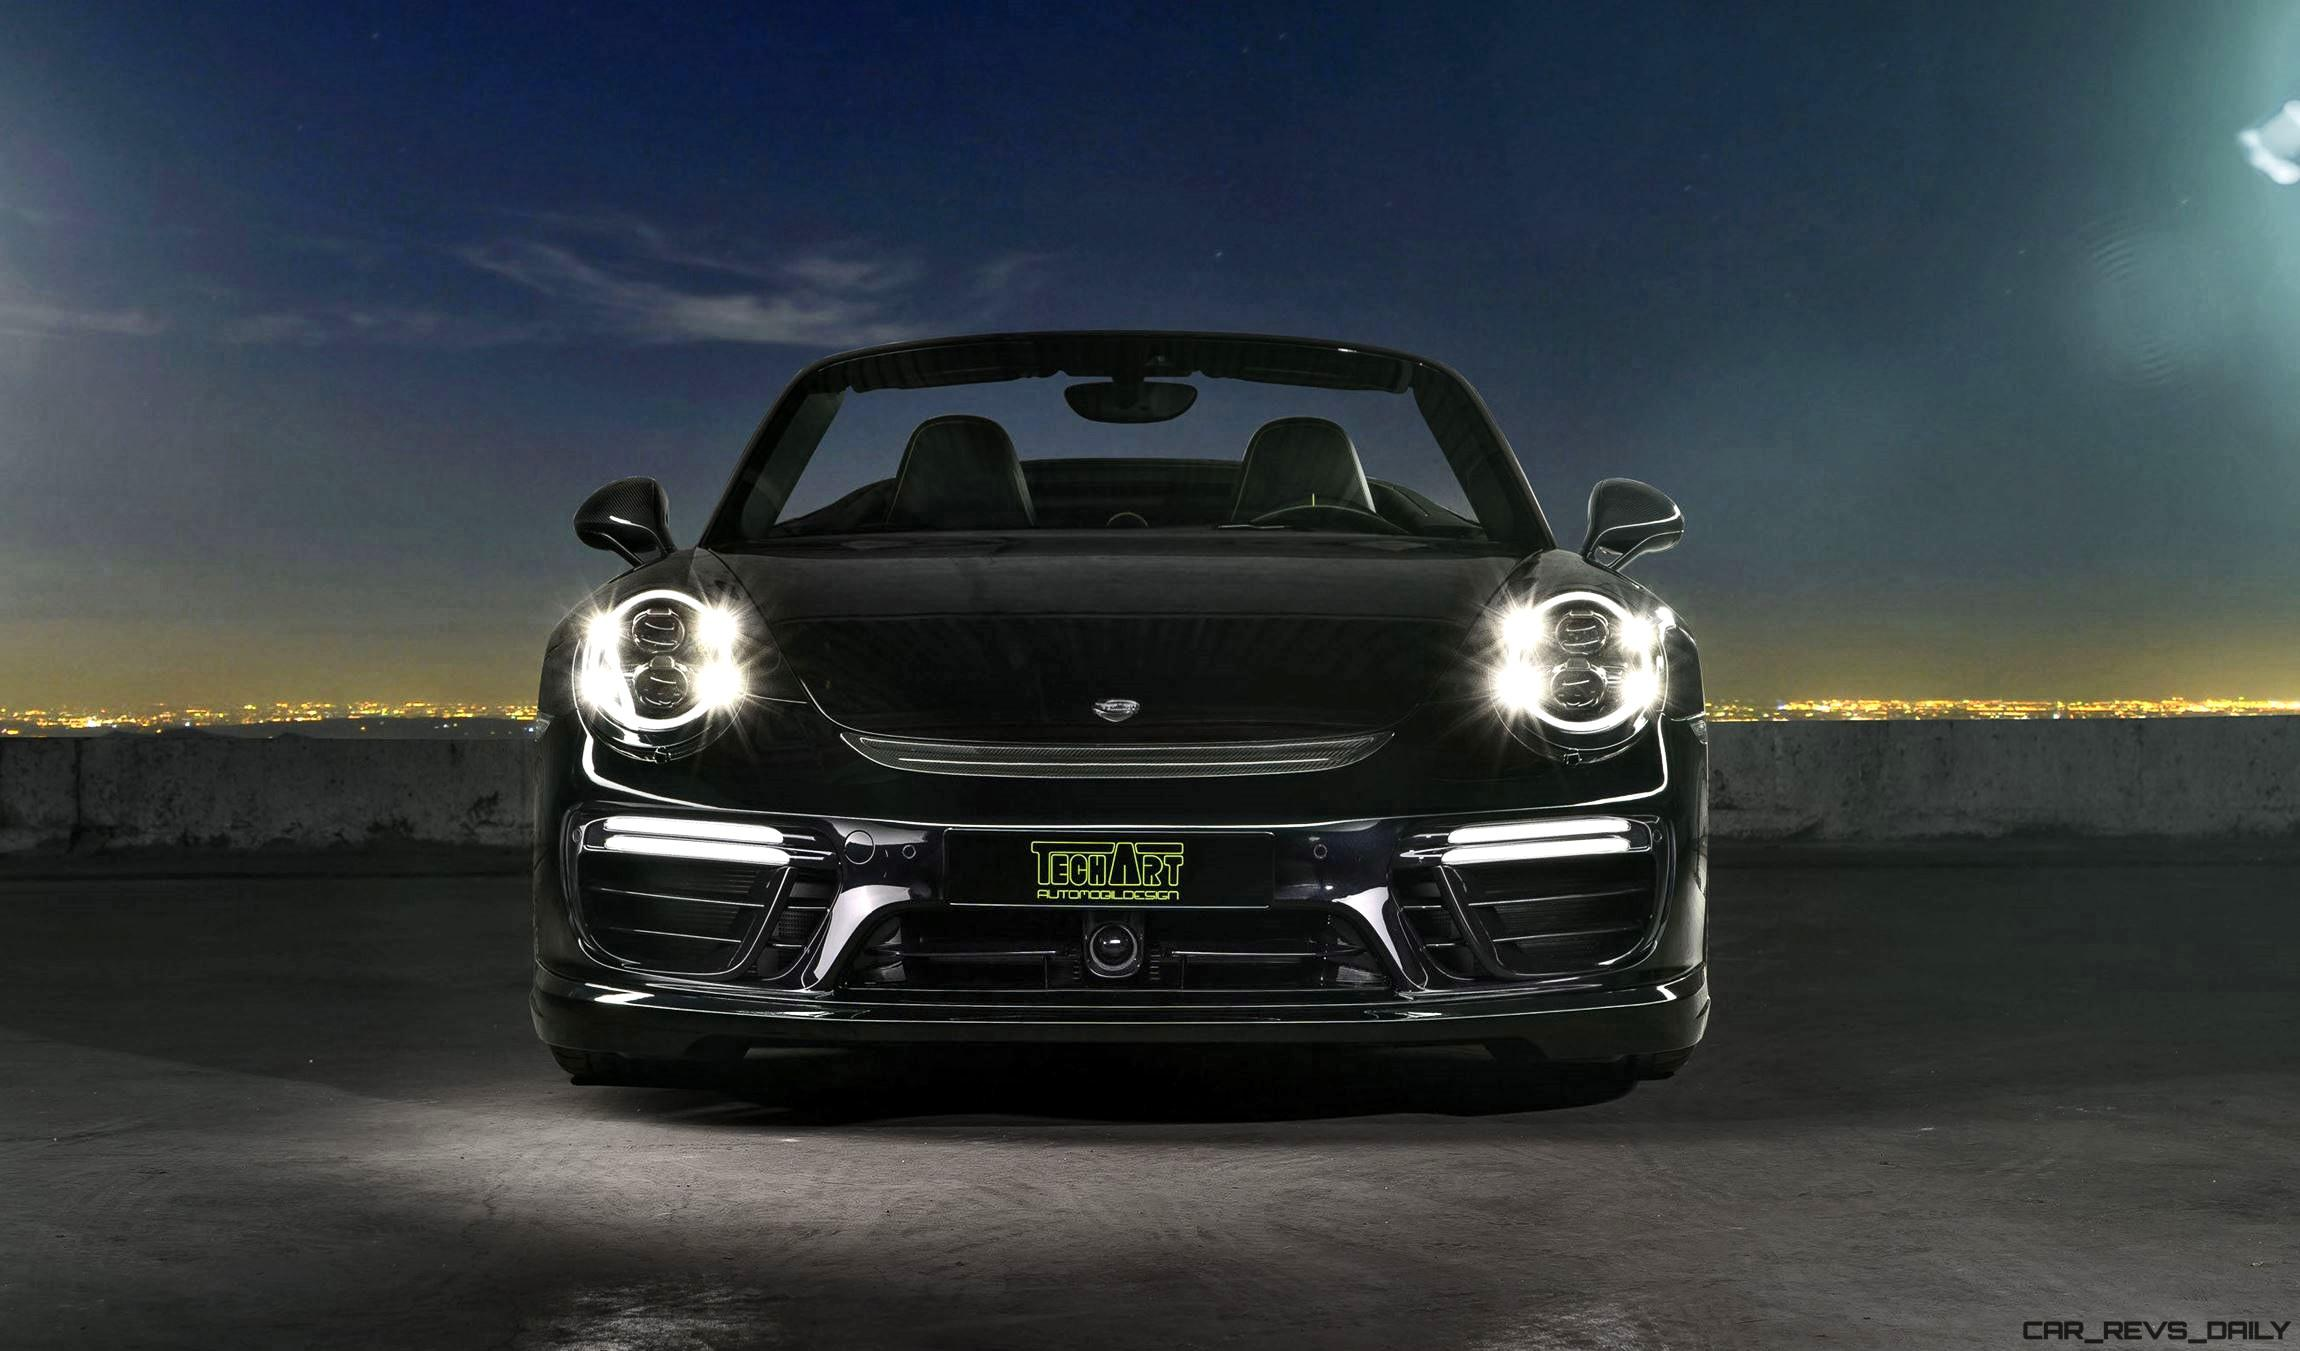 TechArt Debuts 2017 911 and 911 Turbo - PnP Powerkits and Uniquely on first porsche 911, black porsche 911, orange porsche 911, gold porsche 911, green porsche 911, future porsche 911,